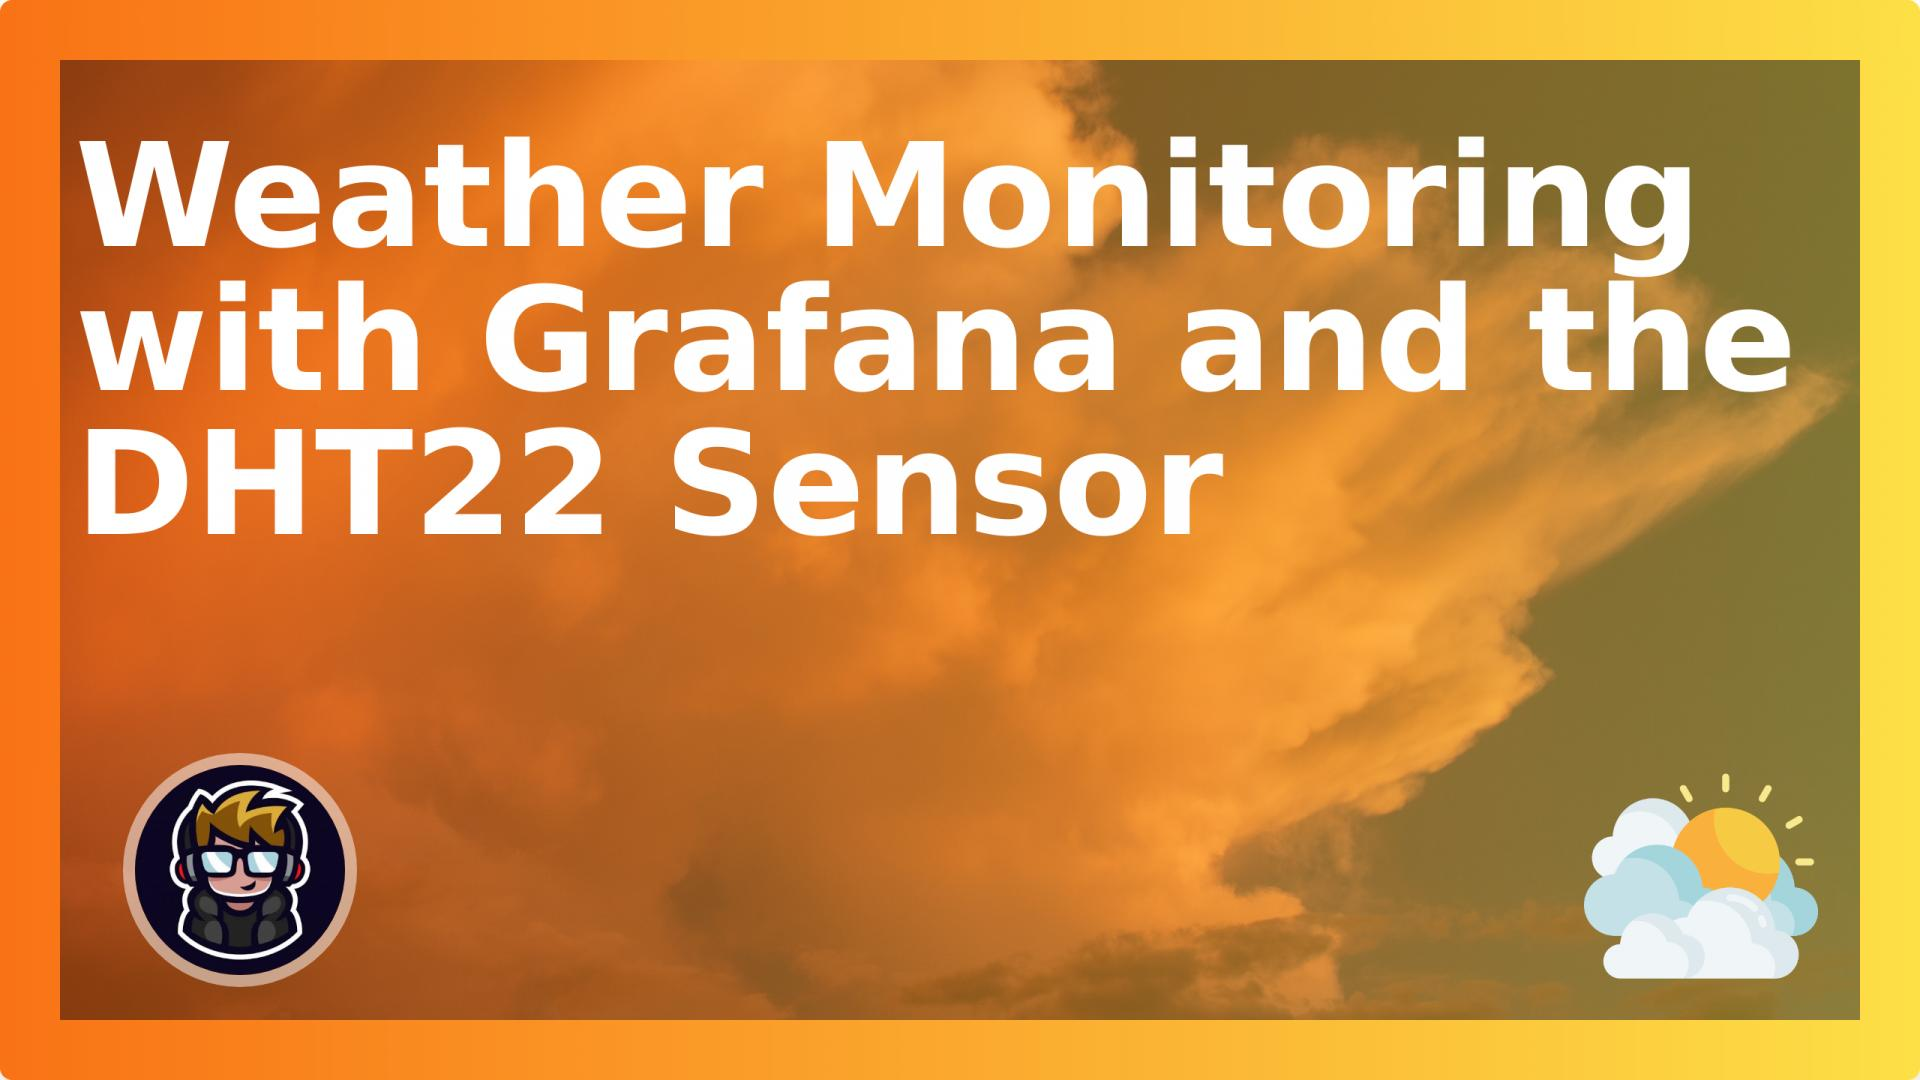 Weather Monitoring with Grafana and the DHT22 Sensor